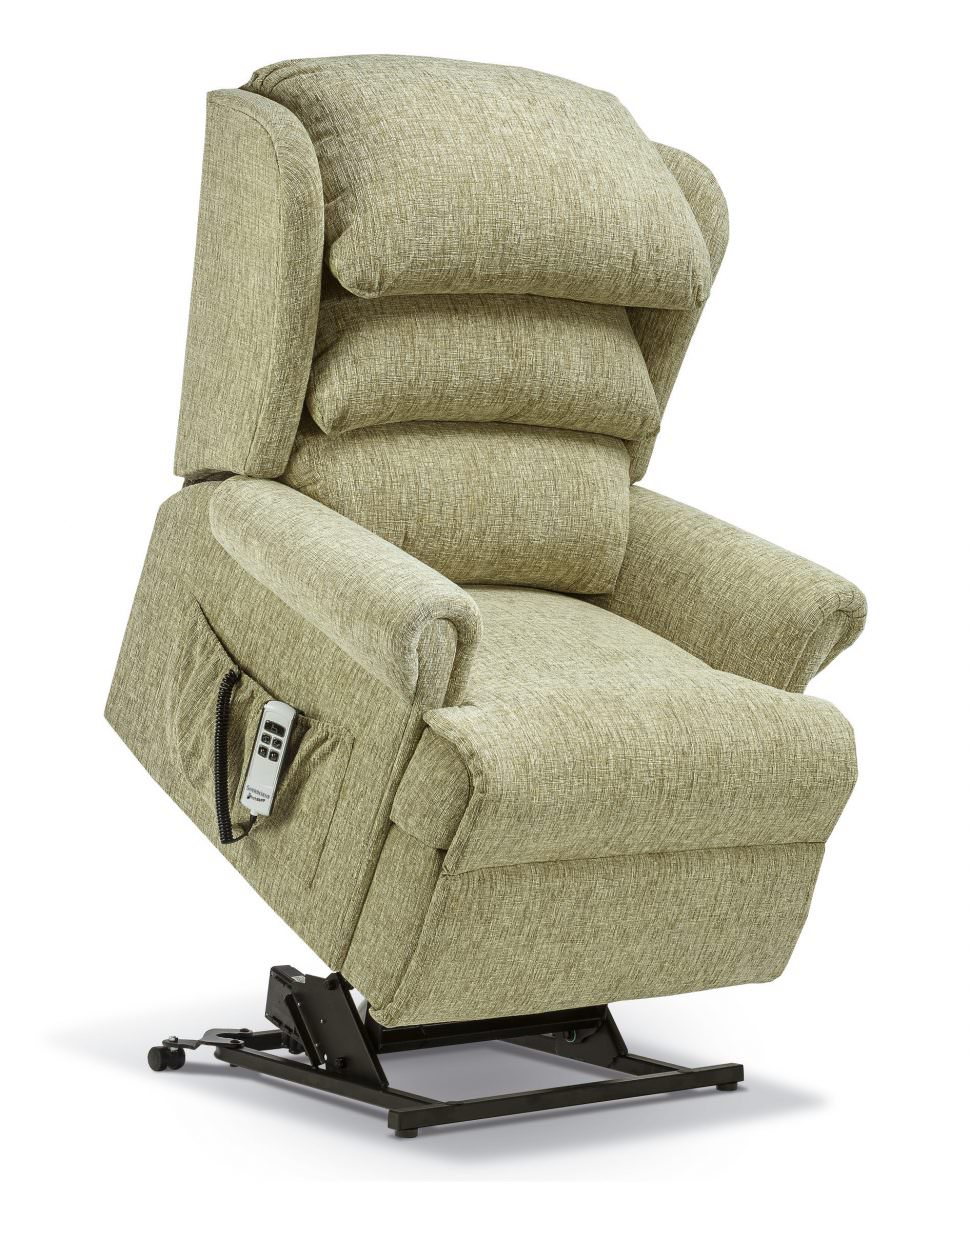 Sherborne Windsor Royale Fabric Rise Amp Recliner Chairs